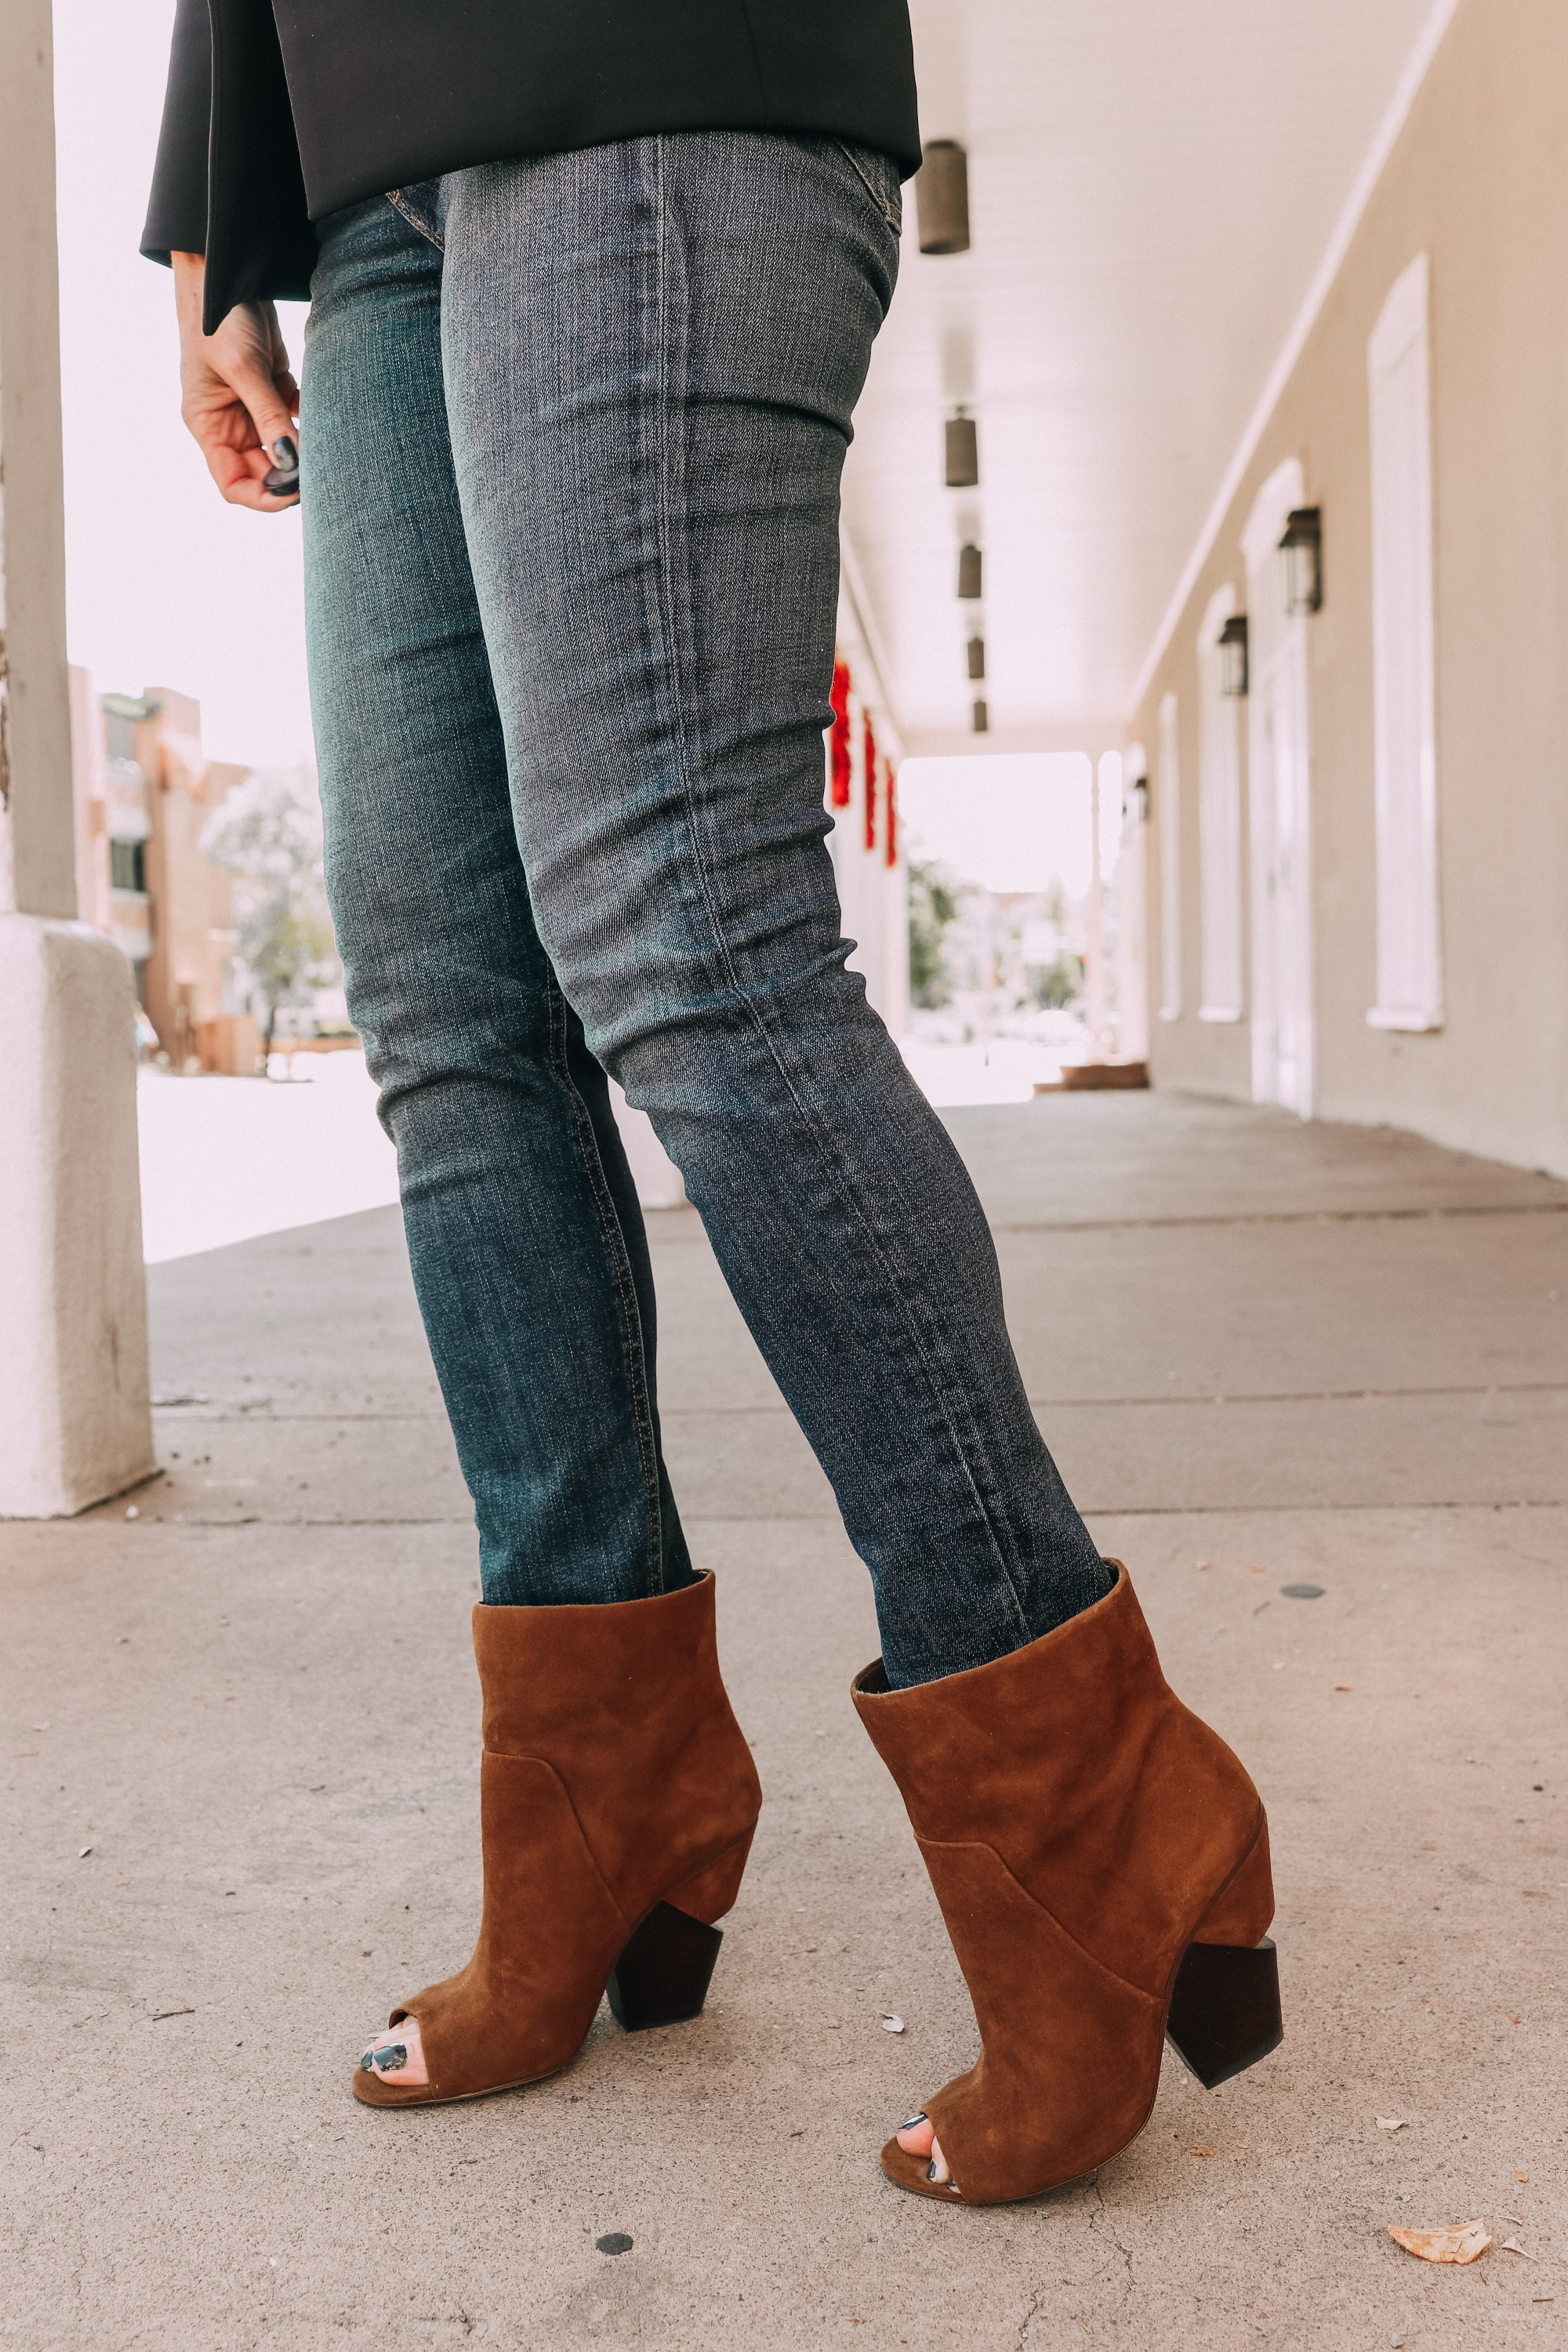 vince camuto kehrey notched heel open toe brown suede bootie fall outfit